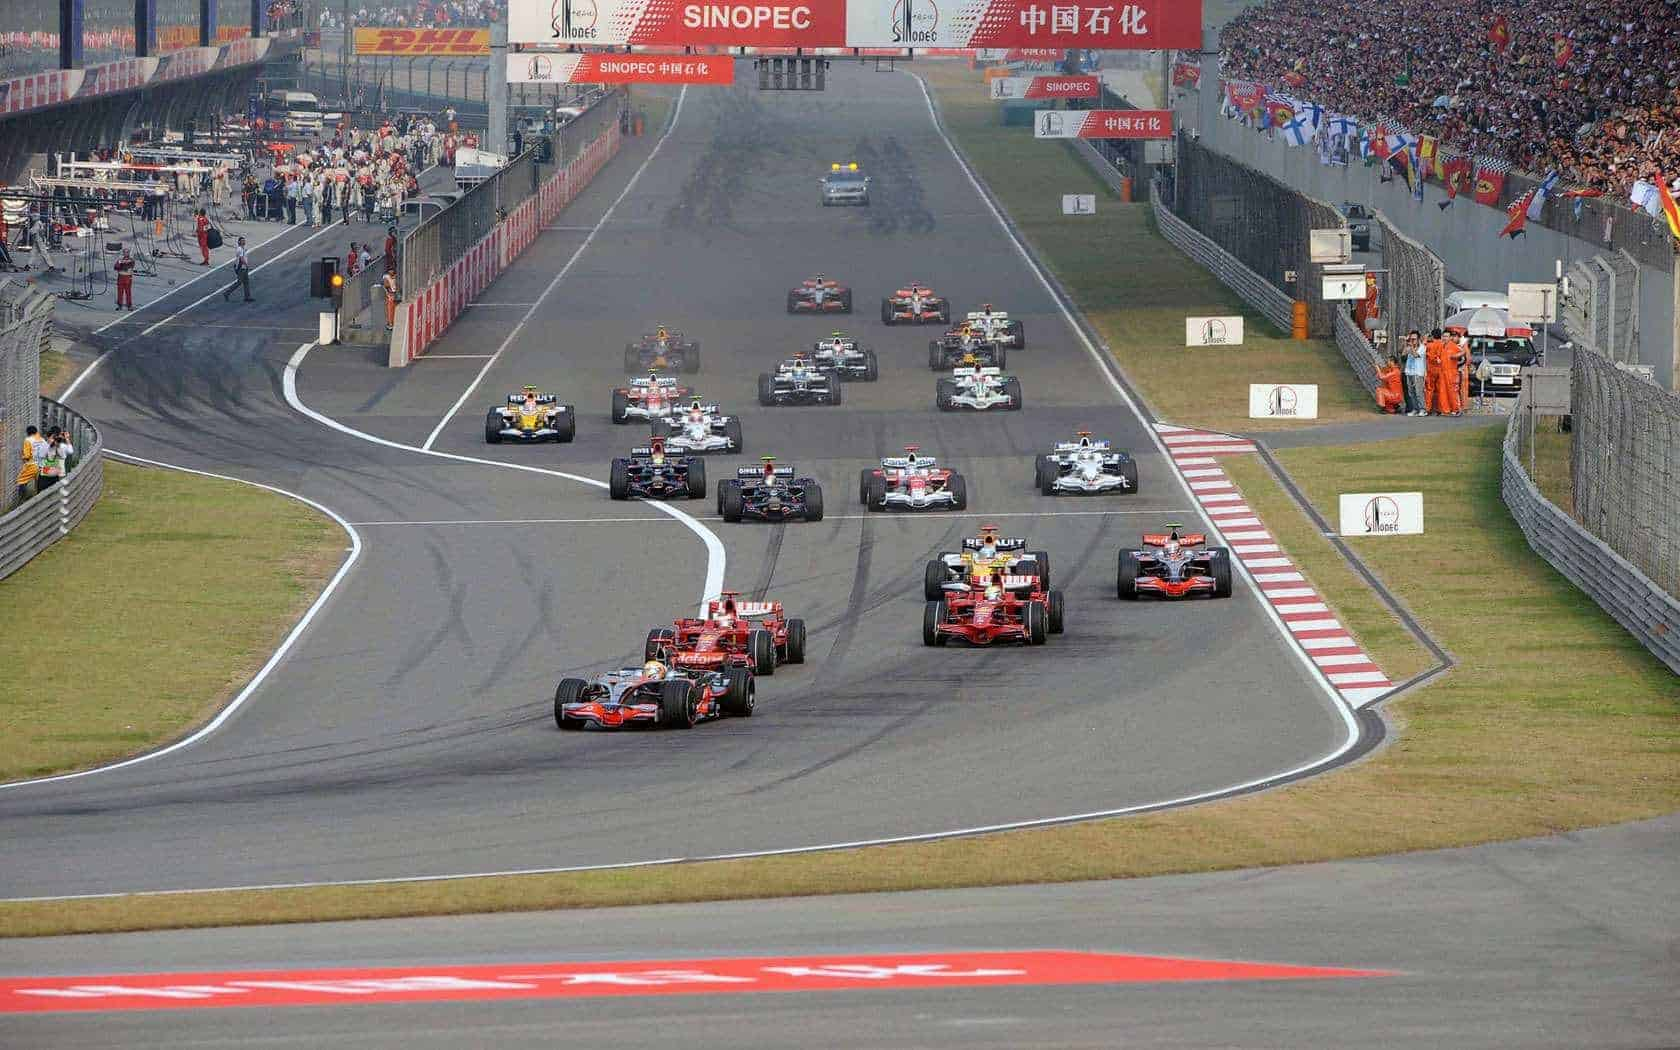 CHinese GP F1 2008 start Photo F1fansite